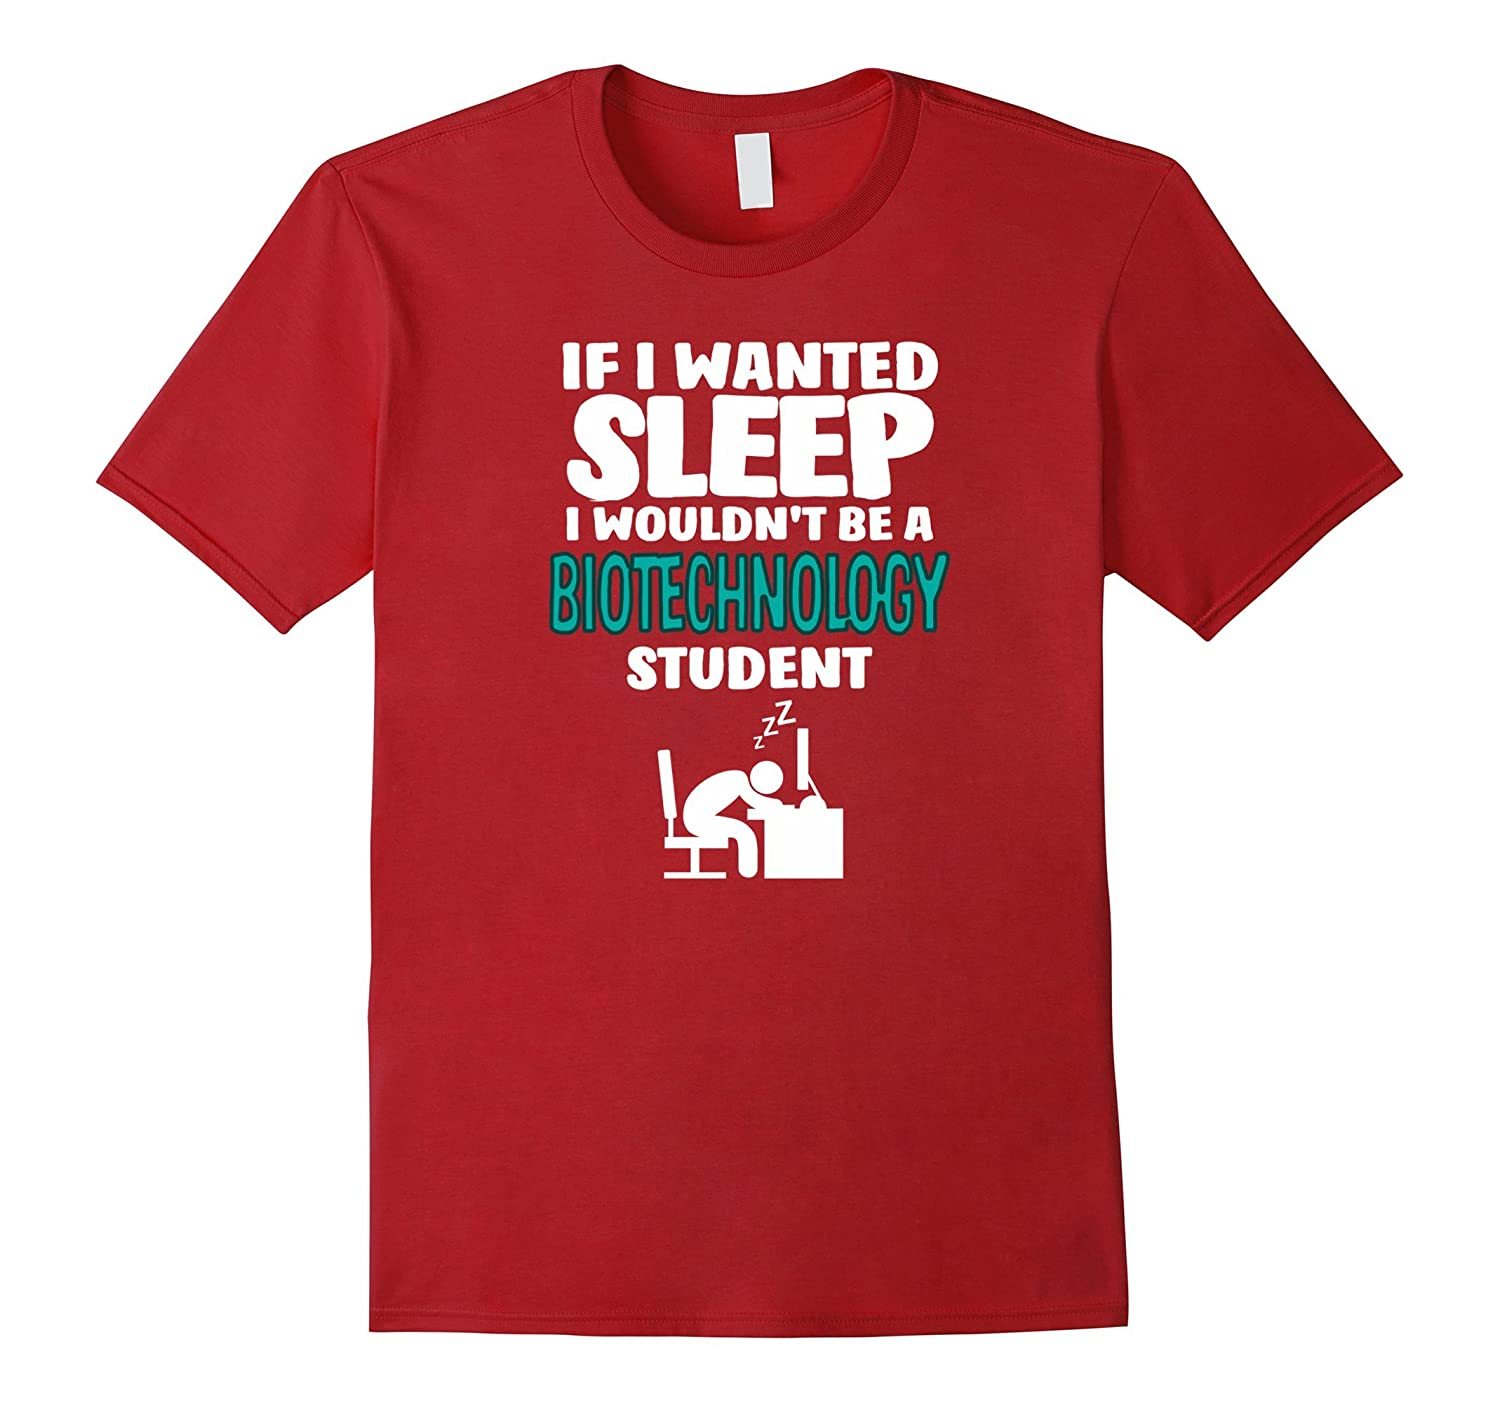 Biotechnology Student T-shirt - If I Wanted Sleep I Wouldn't-FL